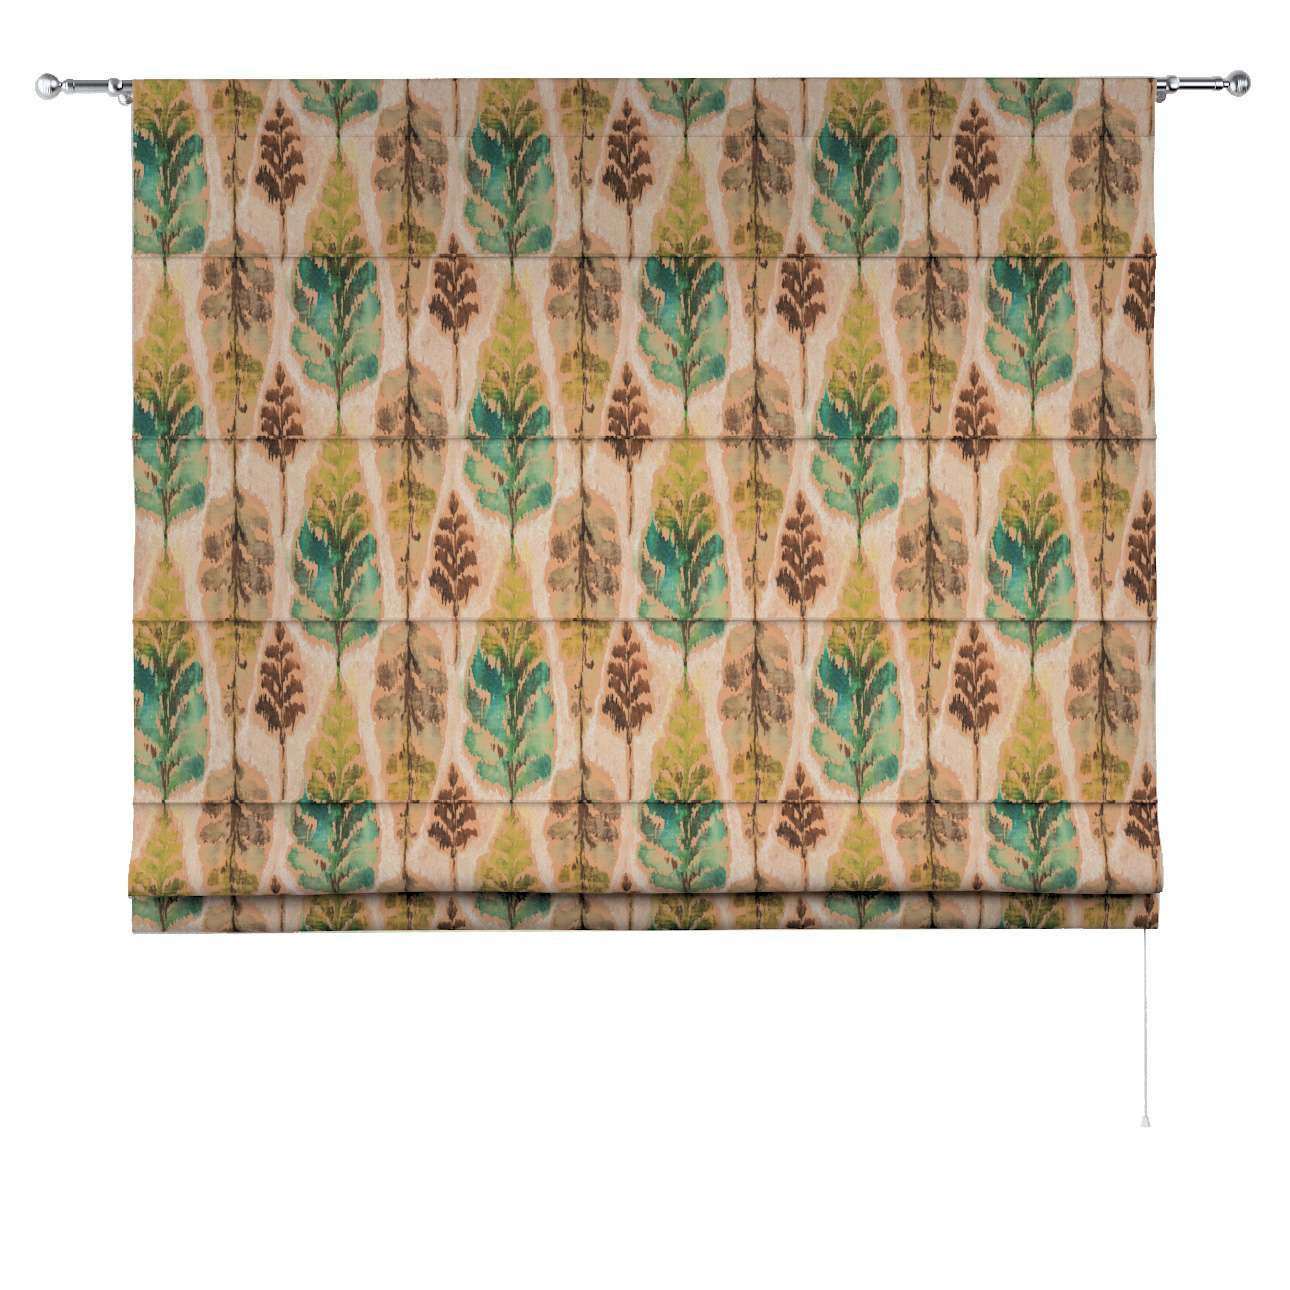 Torino Slot Roman Blind Green And Brown Leaves On Beige